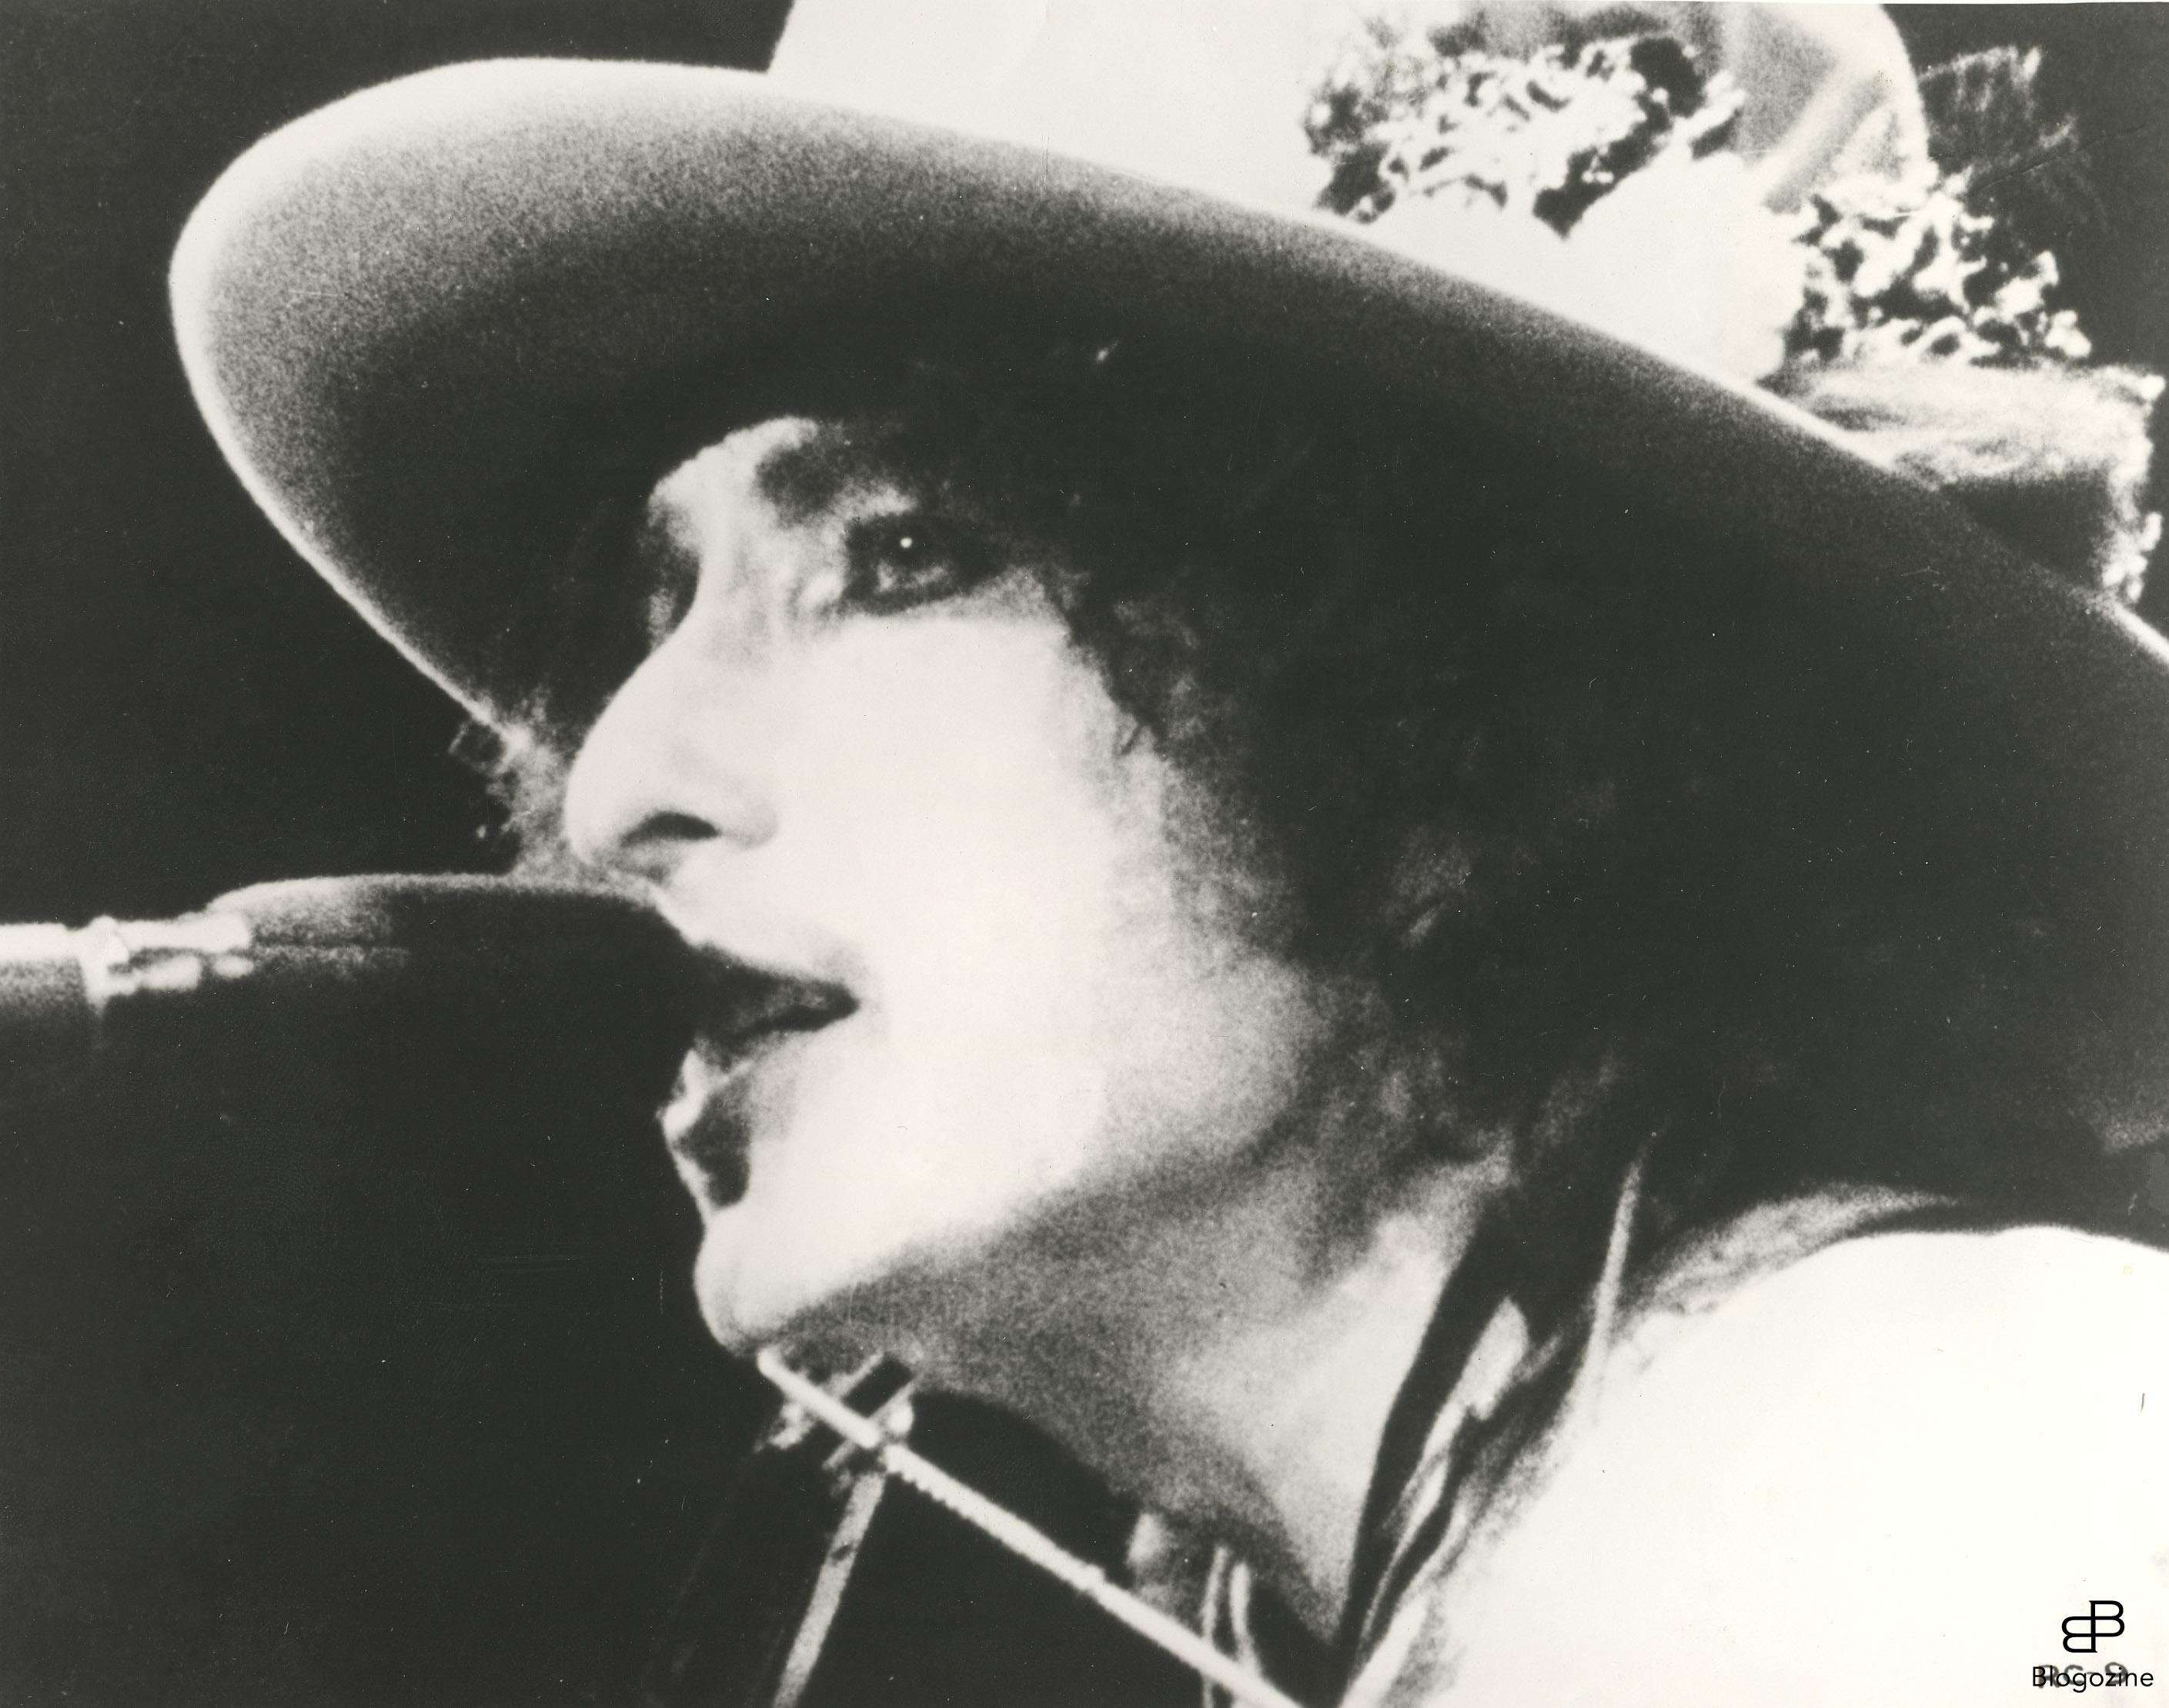 290844 1978; Renaldo And Clara. Original Film Title: Renaldo And Clara, PICTURED: BOB DYLAN, Director: Bob Dylan, IN CAST: Bob Dylan, Joan Baez. Photo: Zuma Press Code: 4014 COPYRIGHT STELLA PICTURES